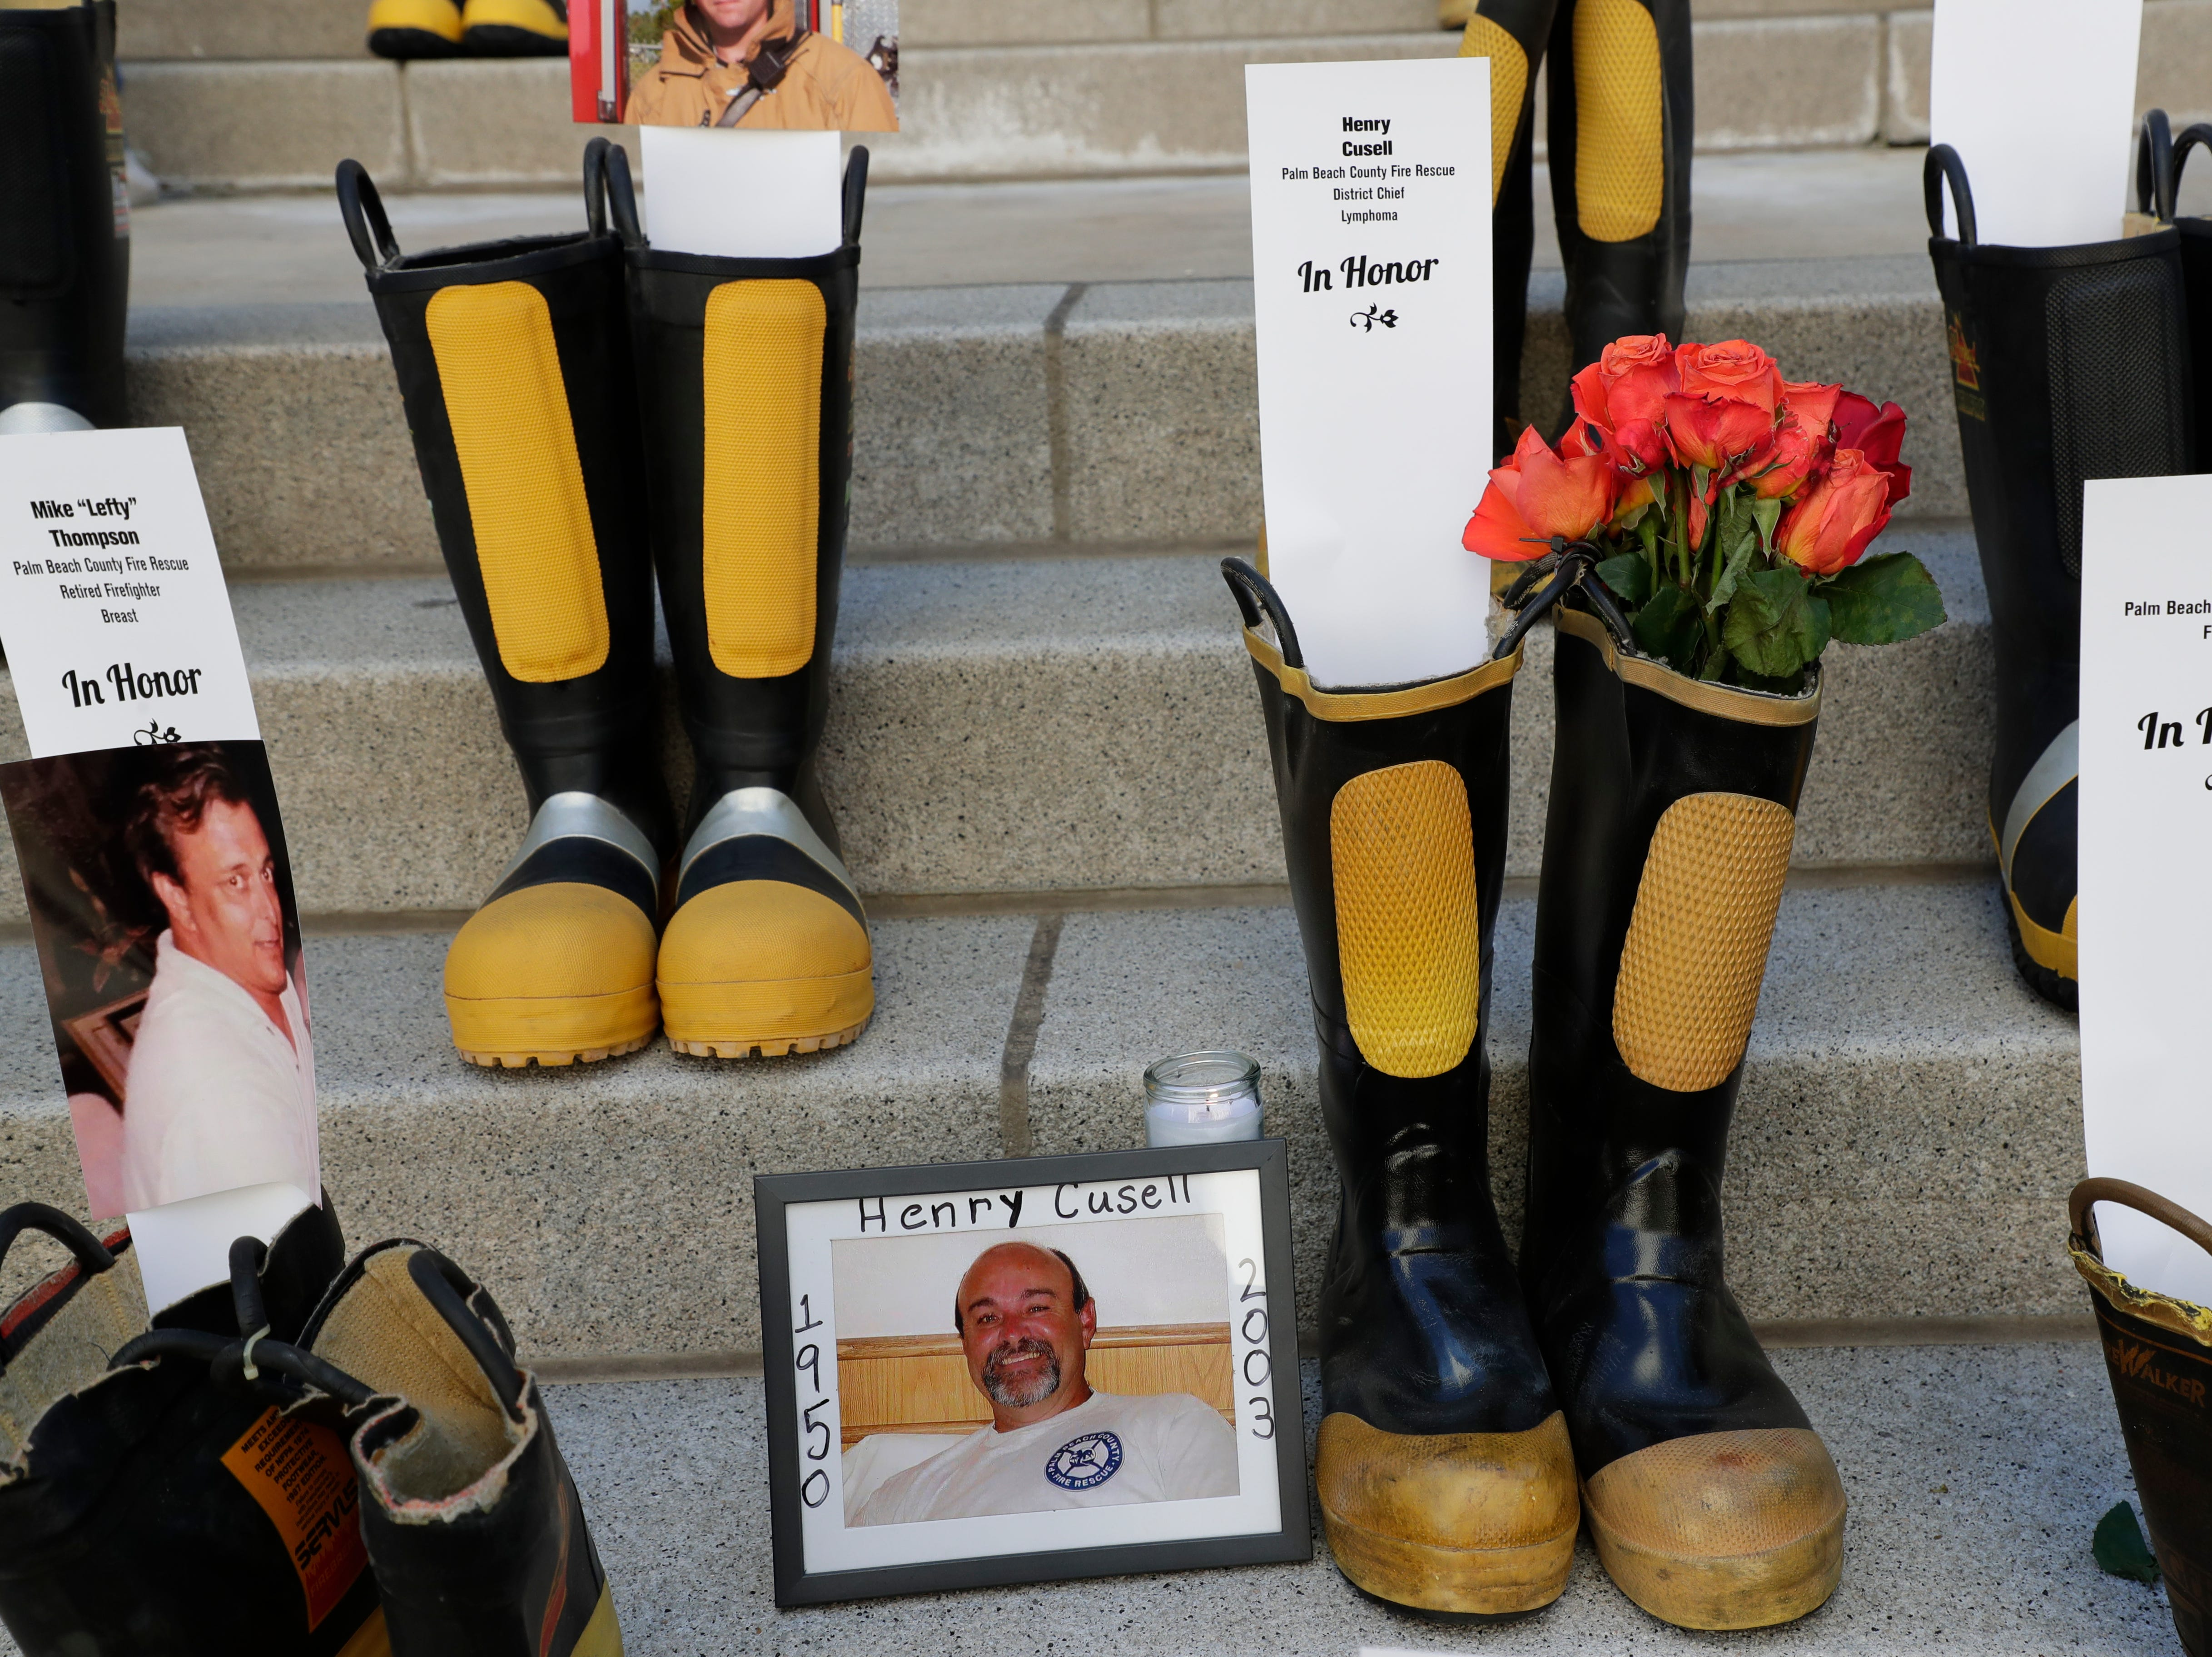 A pair of boots honoring Henry Cusell, a former firefighter who battled Non-Hodgkins lymphoma. Firefighters and their families from around the state create a display at the Capitol of 500 pairs of boots in honor of firefighters who lost their battle or are battling with cancer caused from smoke inhalation and carcinogens Thursday, March 7, 2019. The state of Florida is one of five states in the country that does not have a bill acknowledging cancer is a job-related illness.